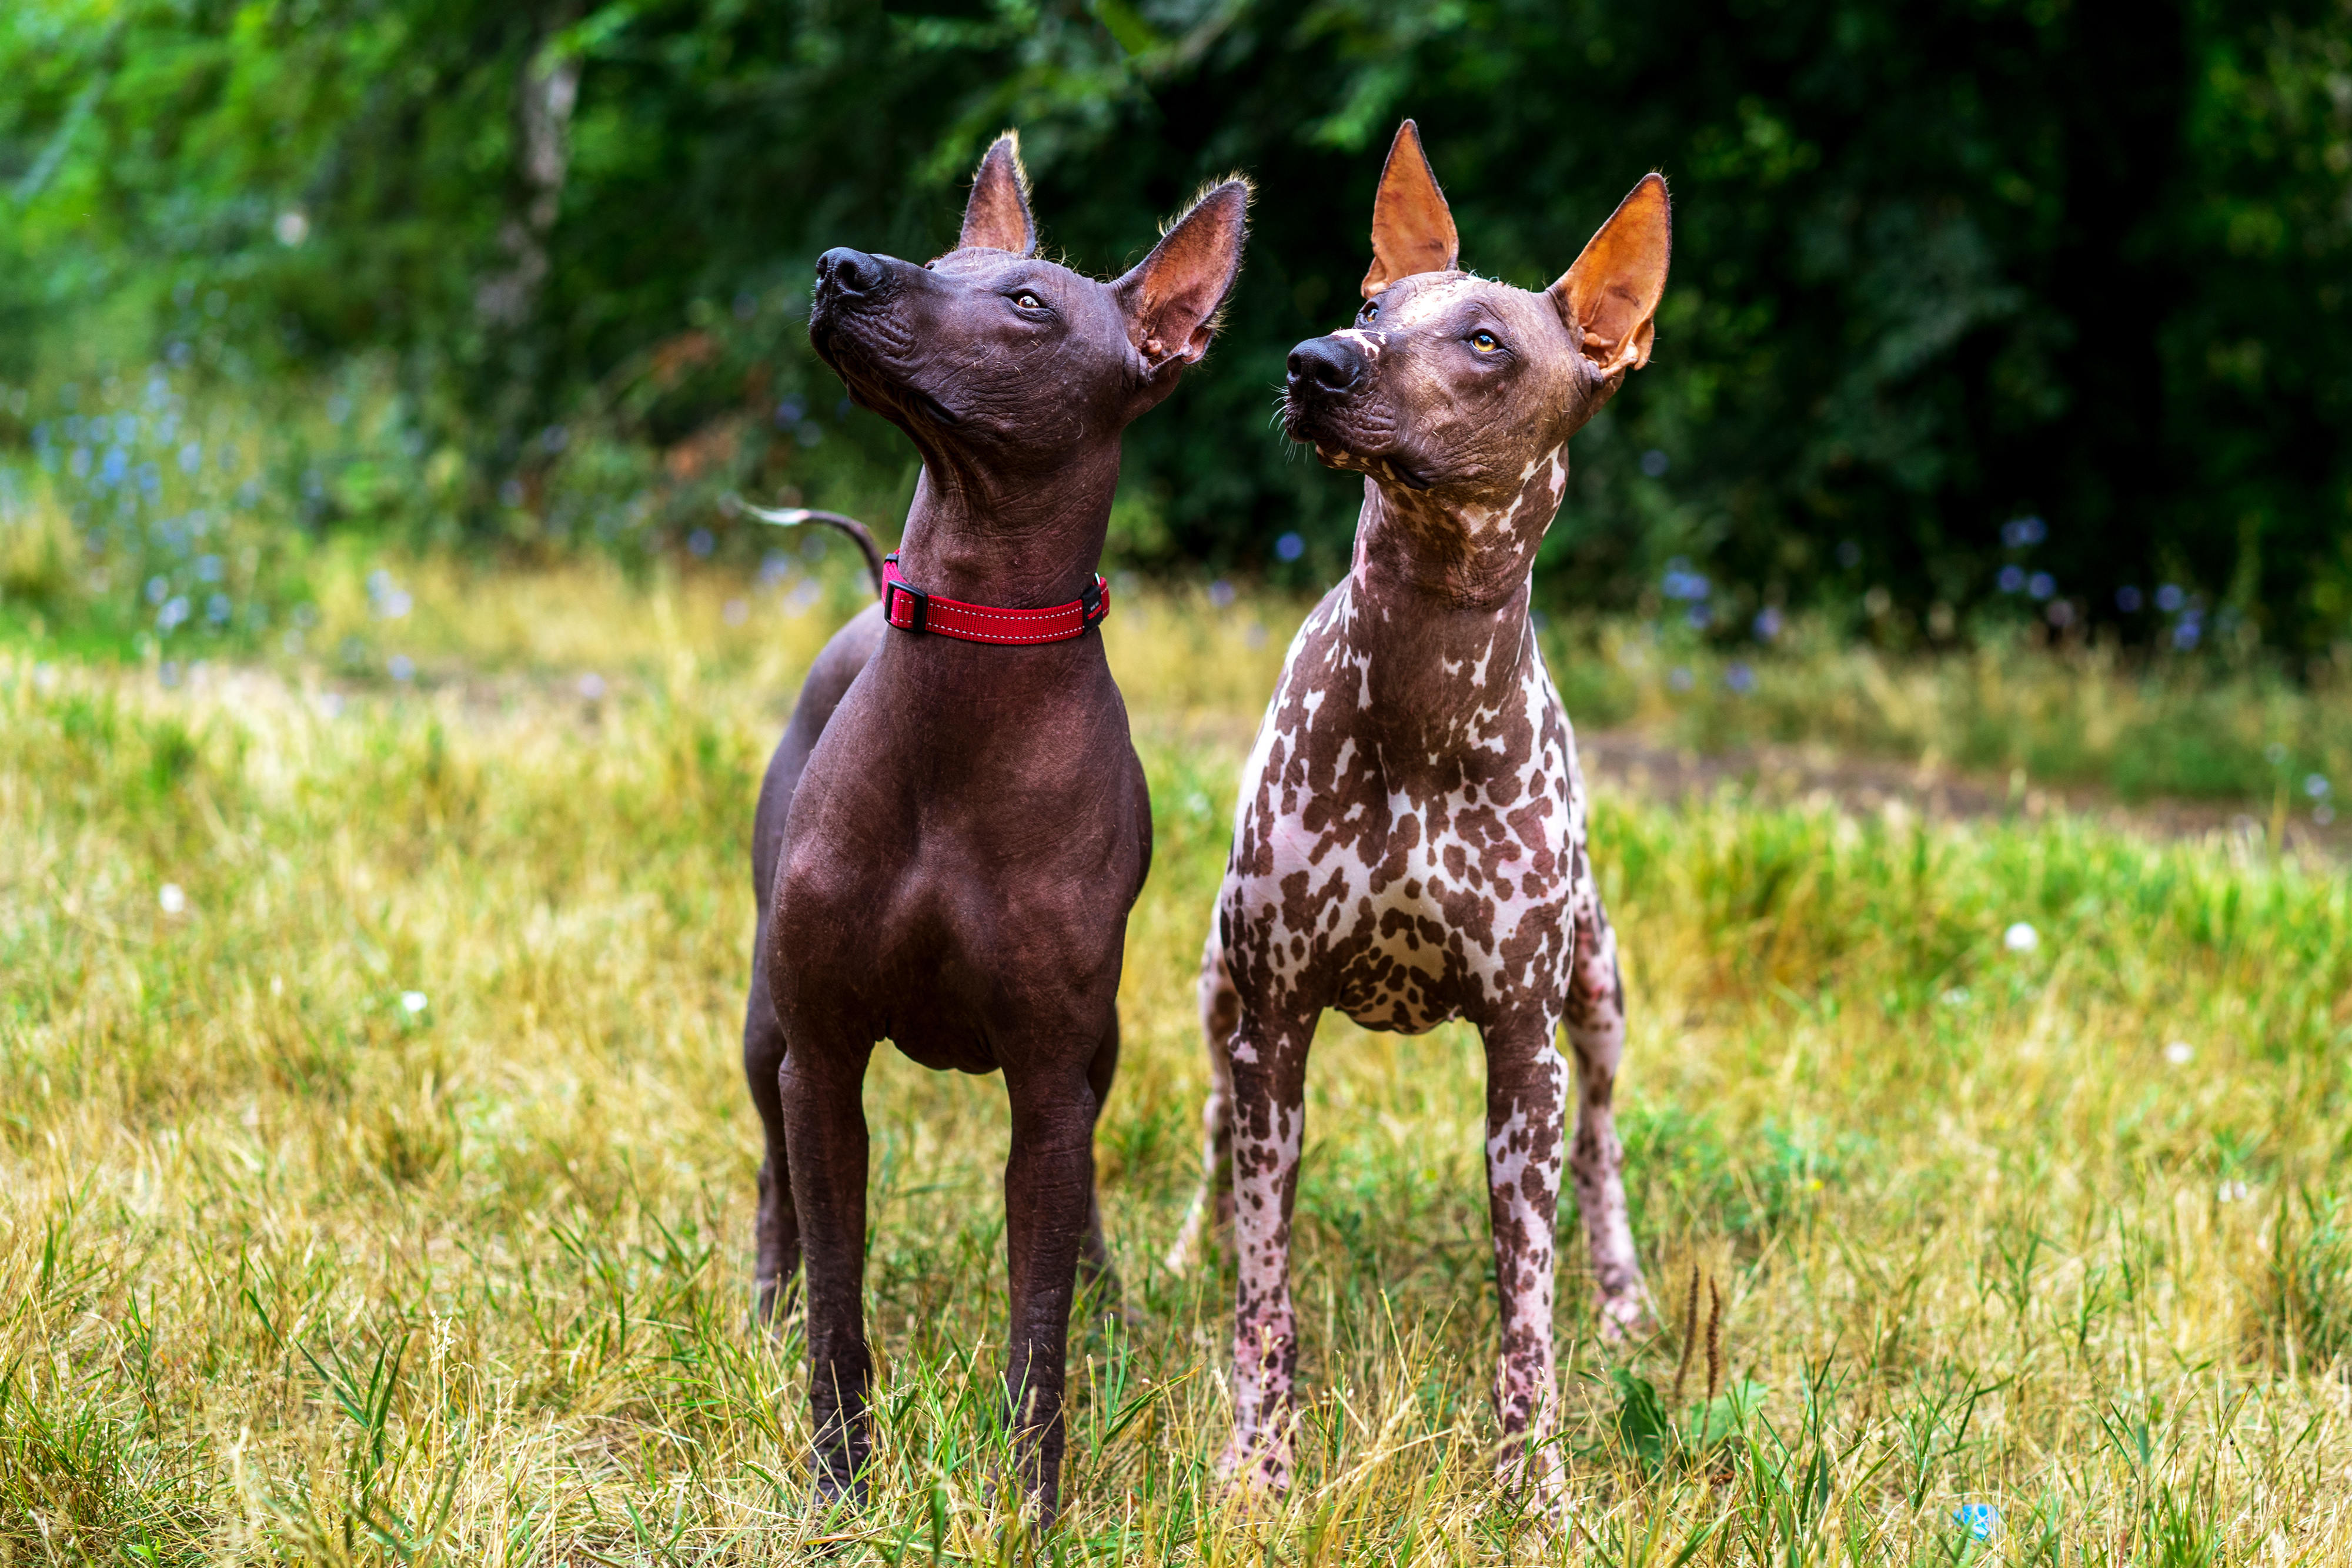 Two Xoloitzcuintli dogs standing in grass, both looking up to the left